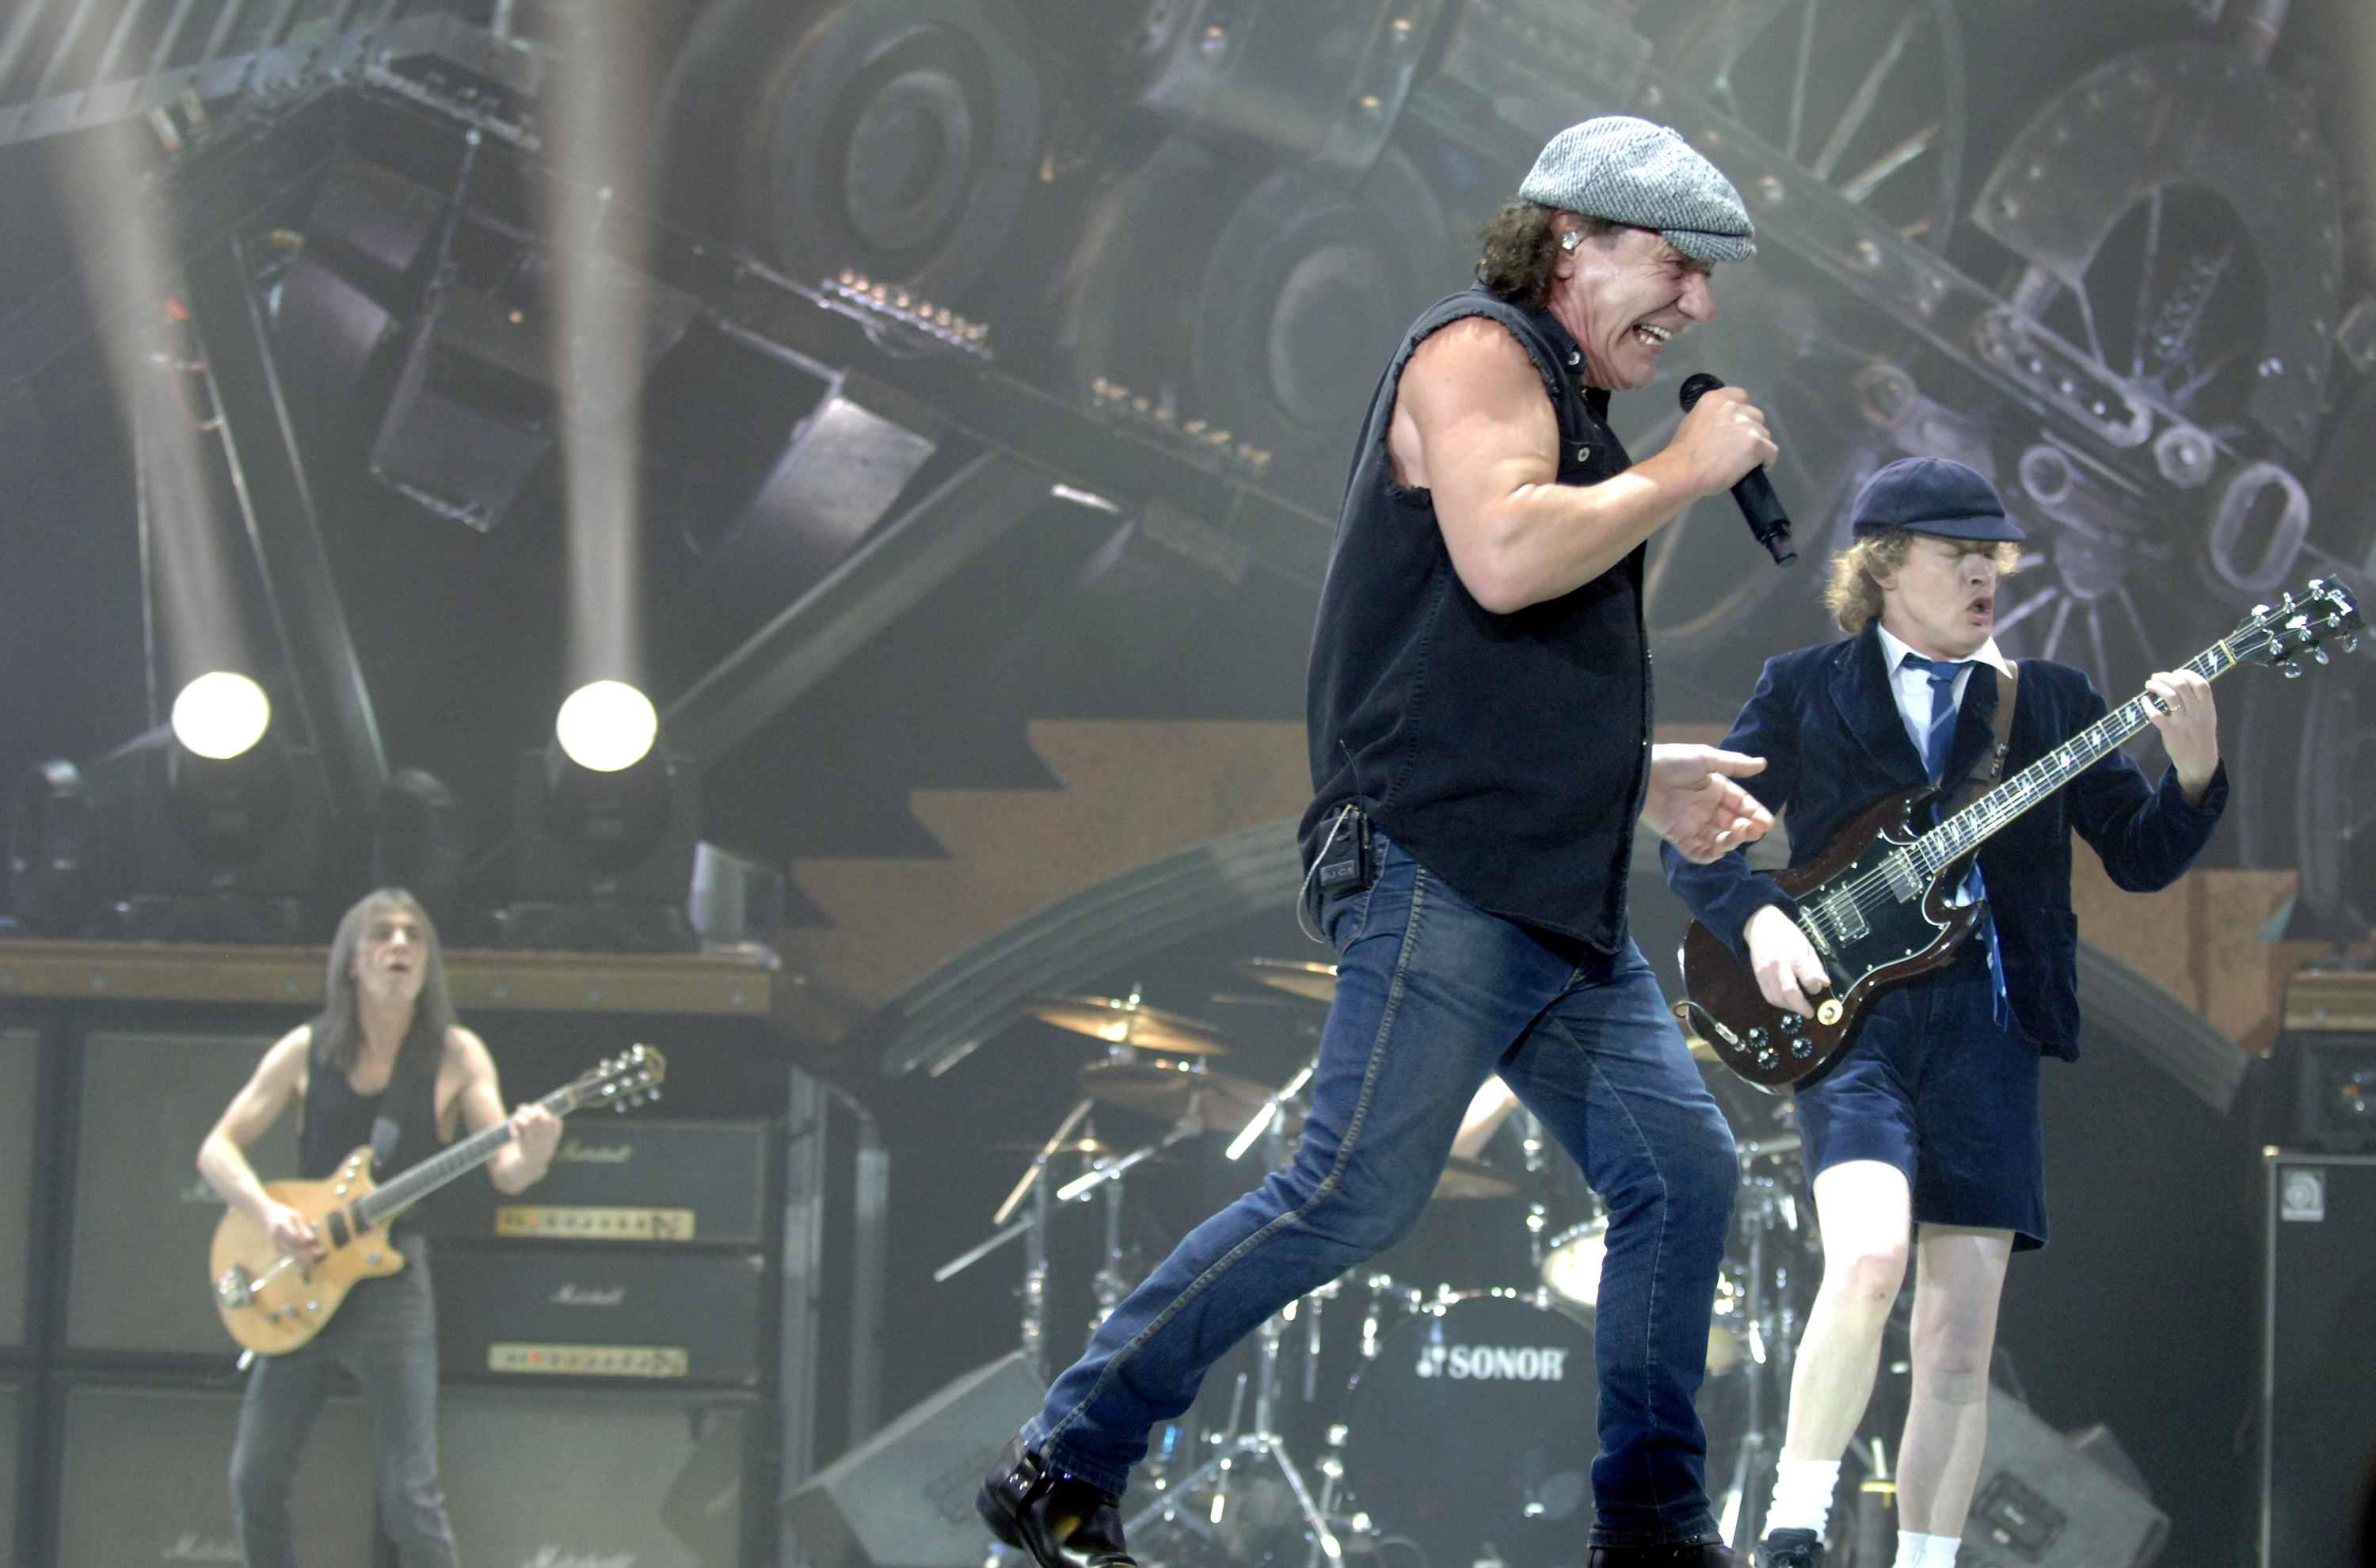 OAKLAND, CA - DECEMBER 2: (L - R) Malcolm Young, Brian Johnson, and Angus Young of AC/DC perform in support of the bands' Bla